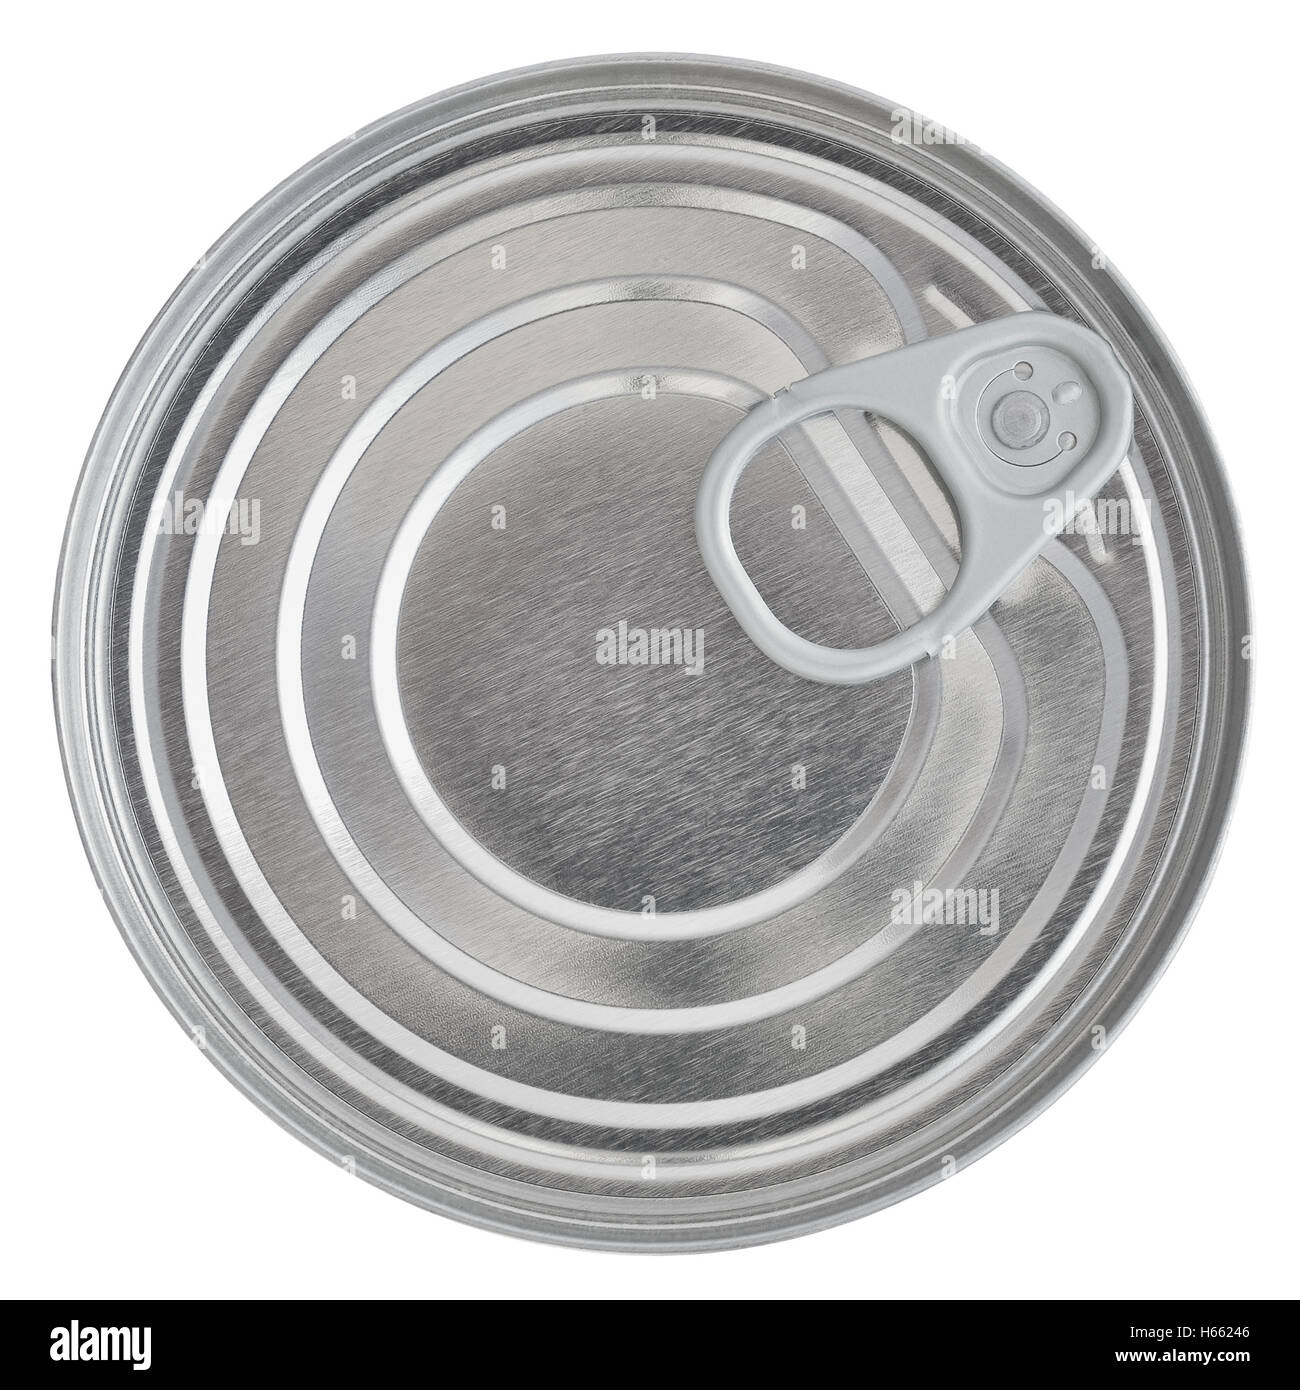 Tin Can Lid, Food Preserve Ring Pull Stay-Tab Canister Sealed Top, Large Detailed Isolated Macro Closeup - Stock Image